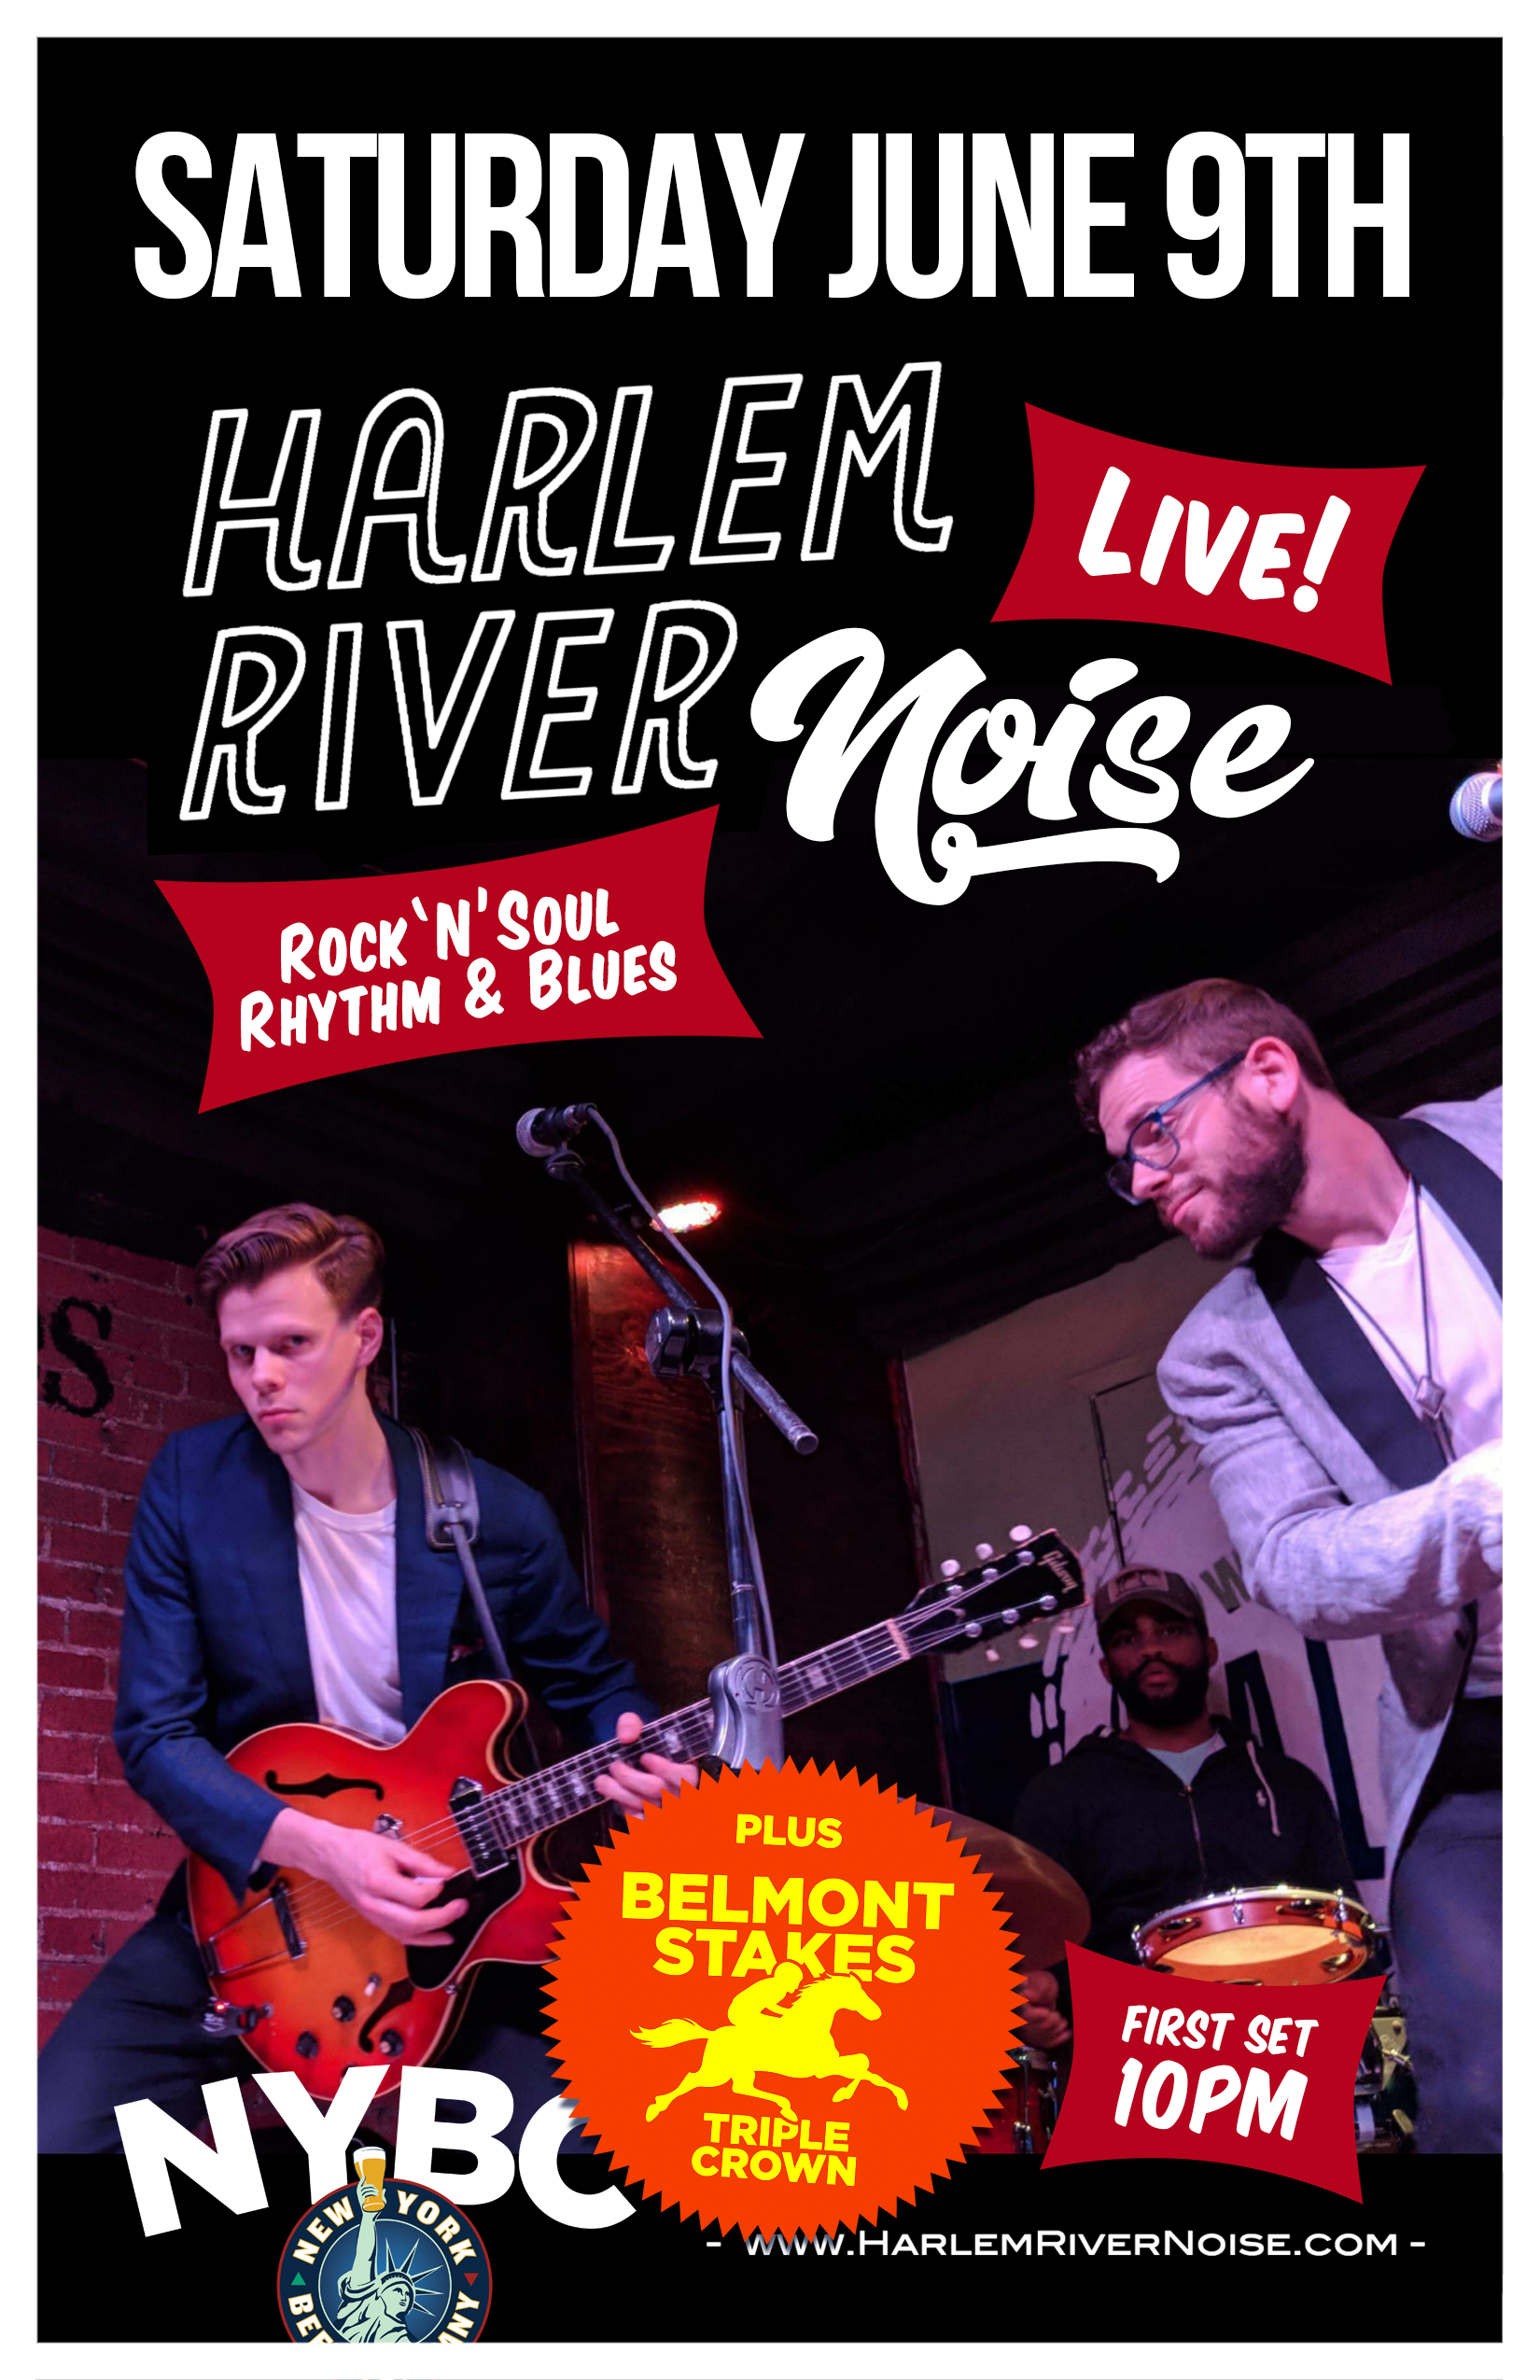 harlem river noise NYC